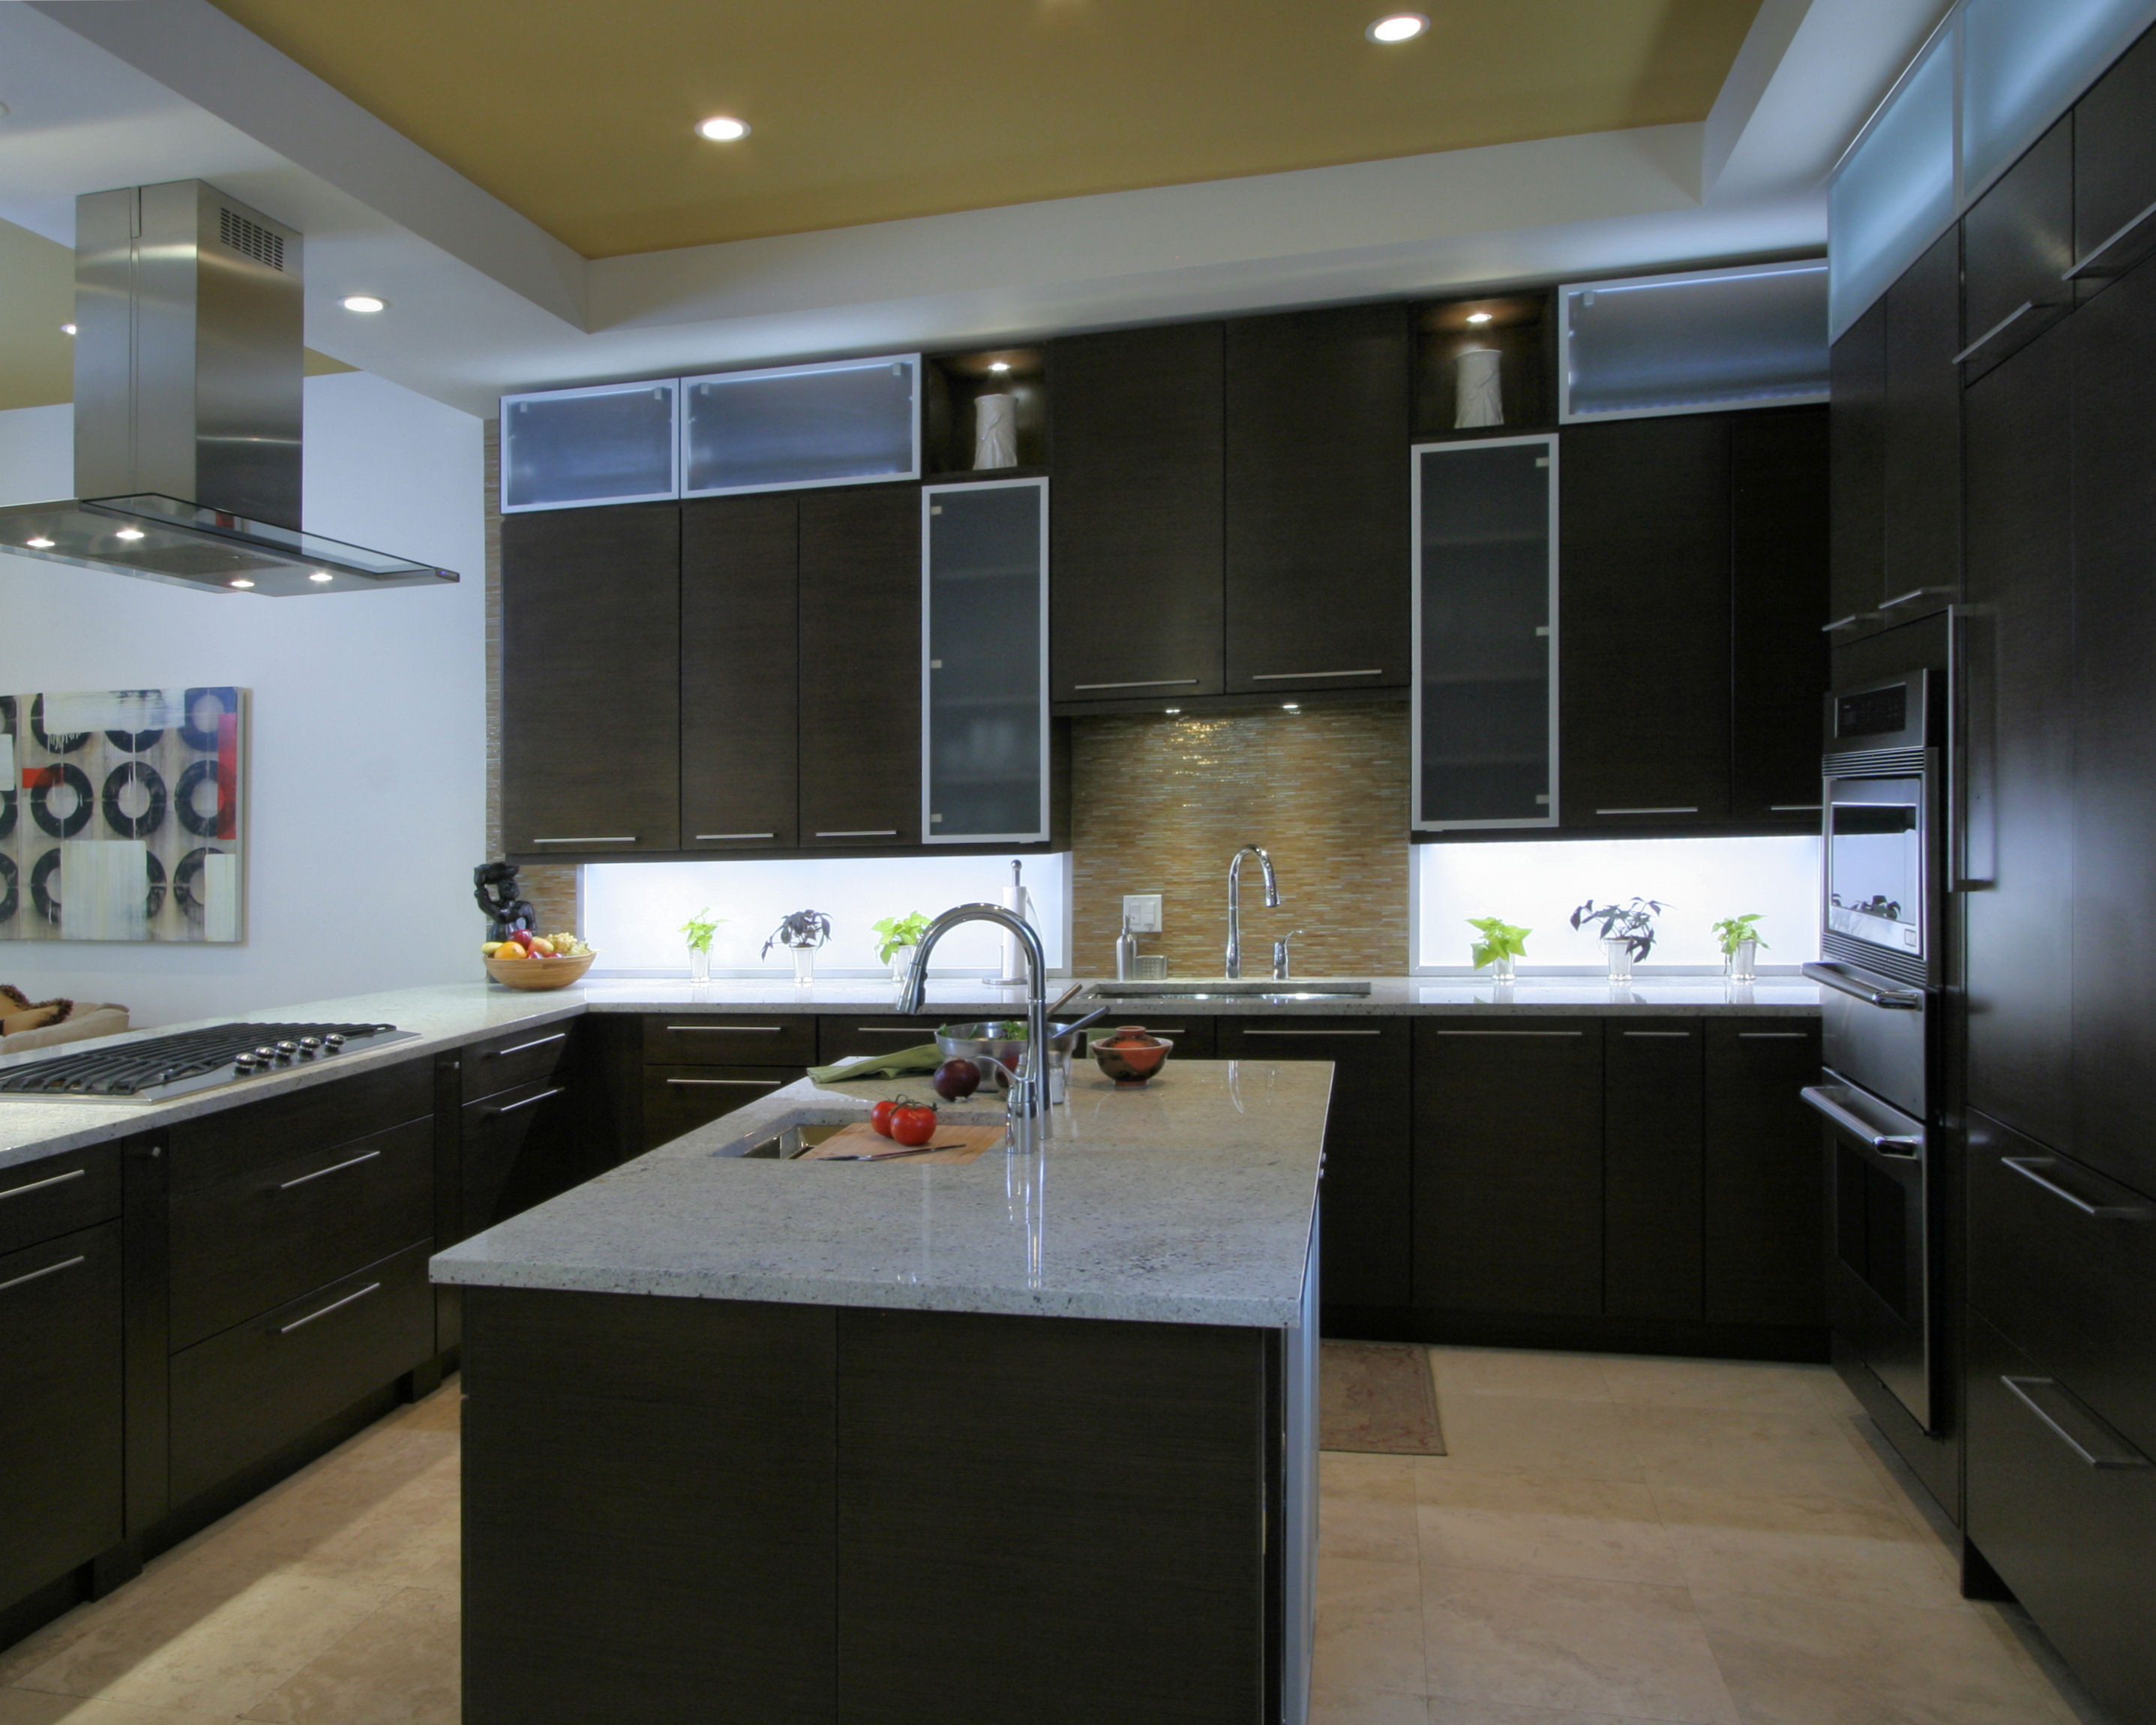 Led Lighting Under Cabinet Kitchen Defining Accent And Task Lighting Inspiredled Blog